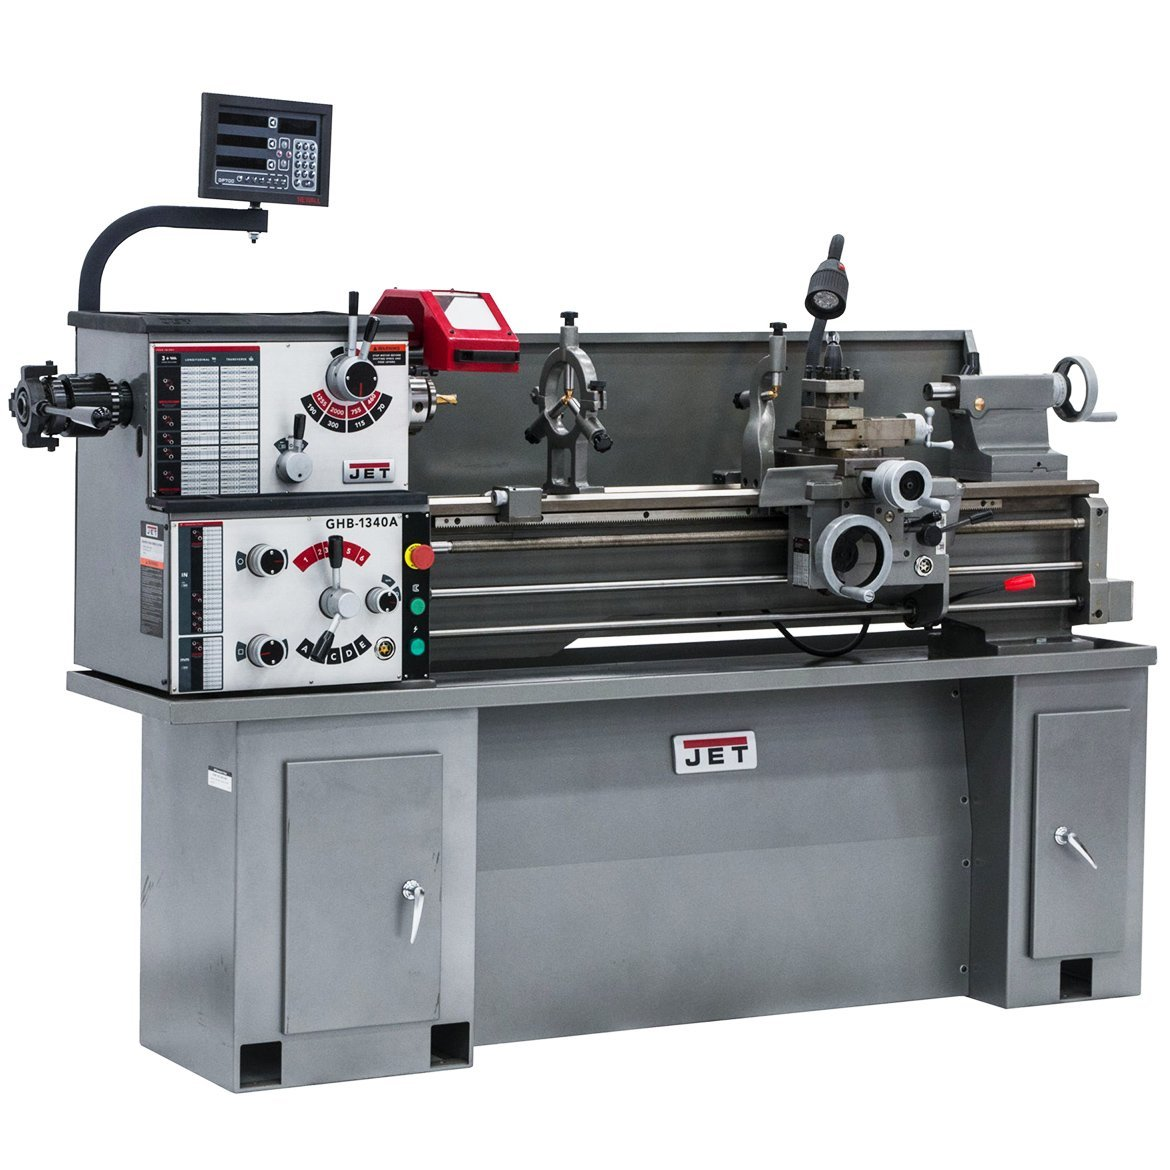 JET GHB-1340A Lathe with C80 DRO, TAK and COLLET CLSR